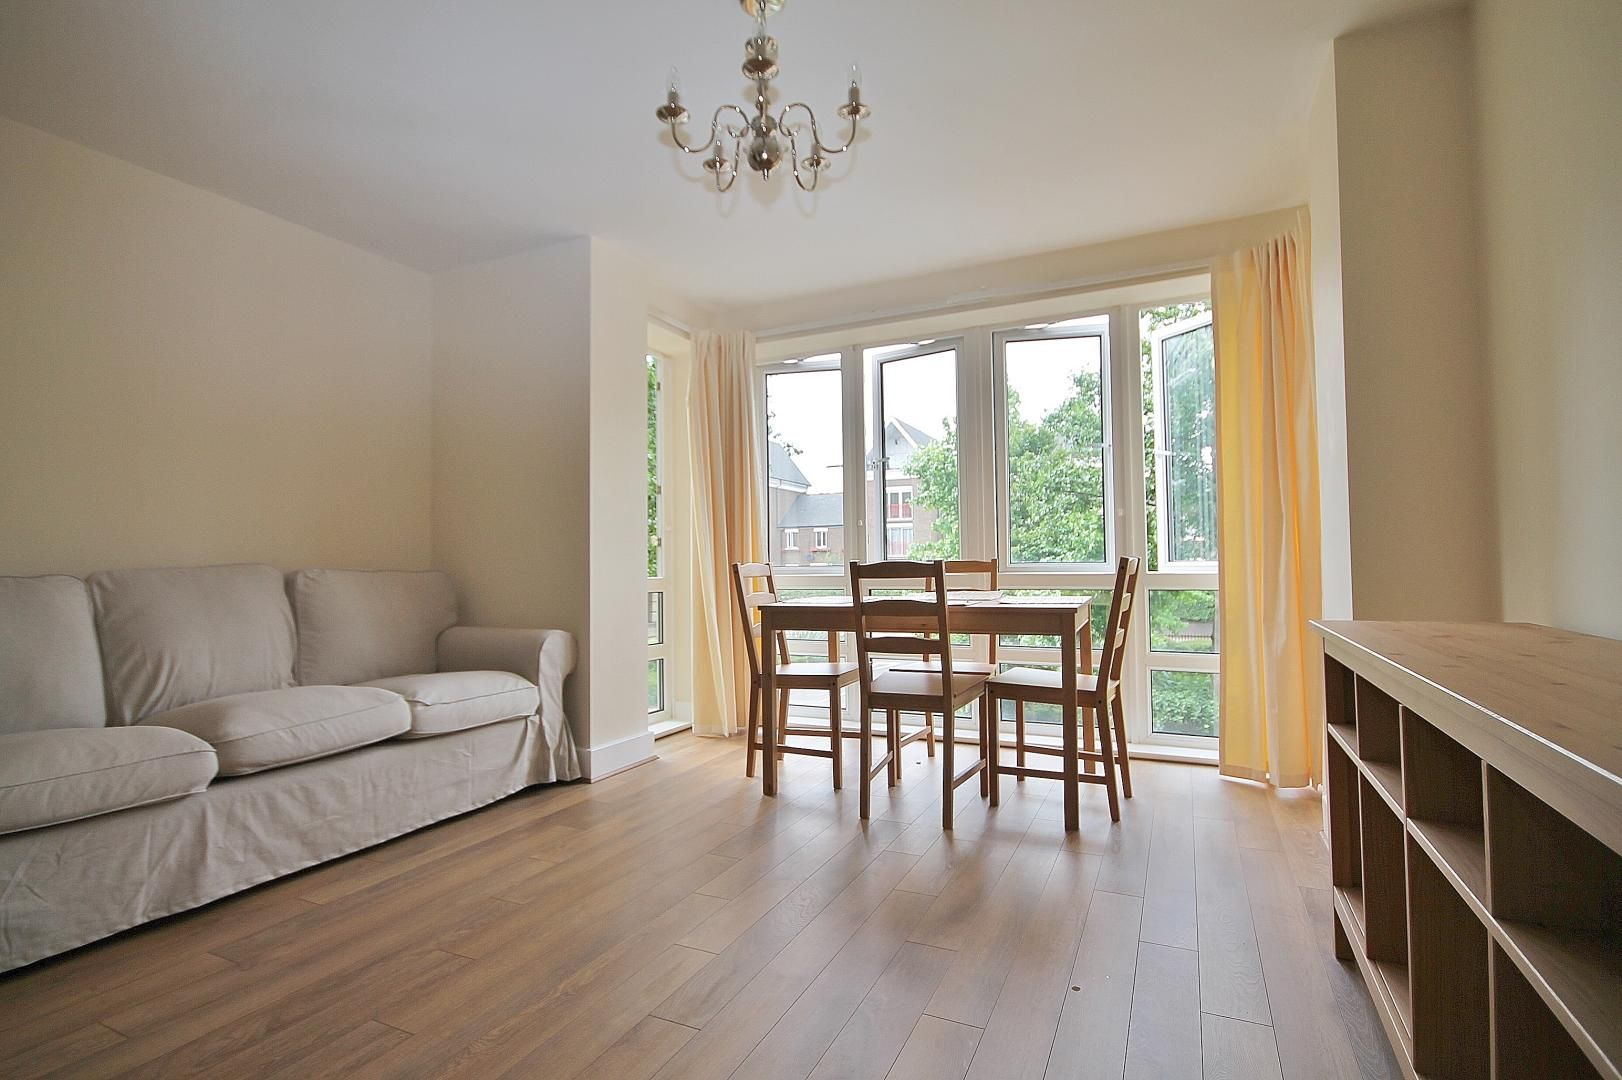 2 bed  to rent in St Davids Square - Property Image 1